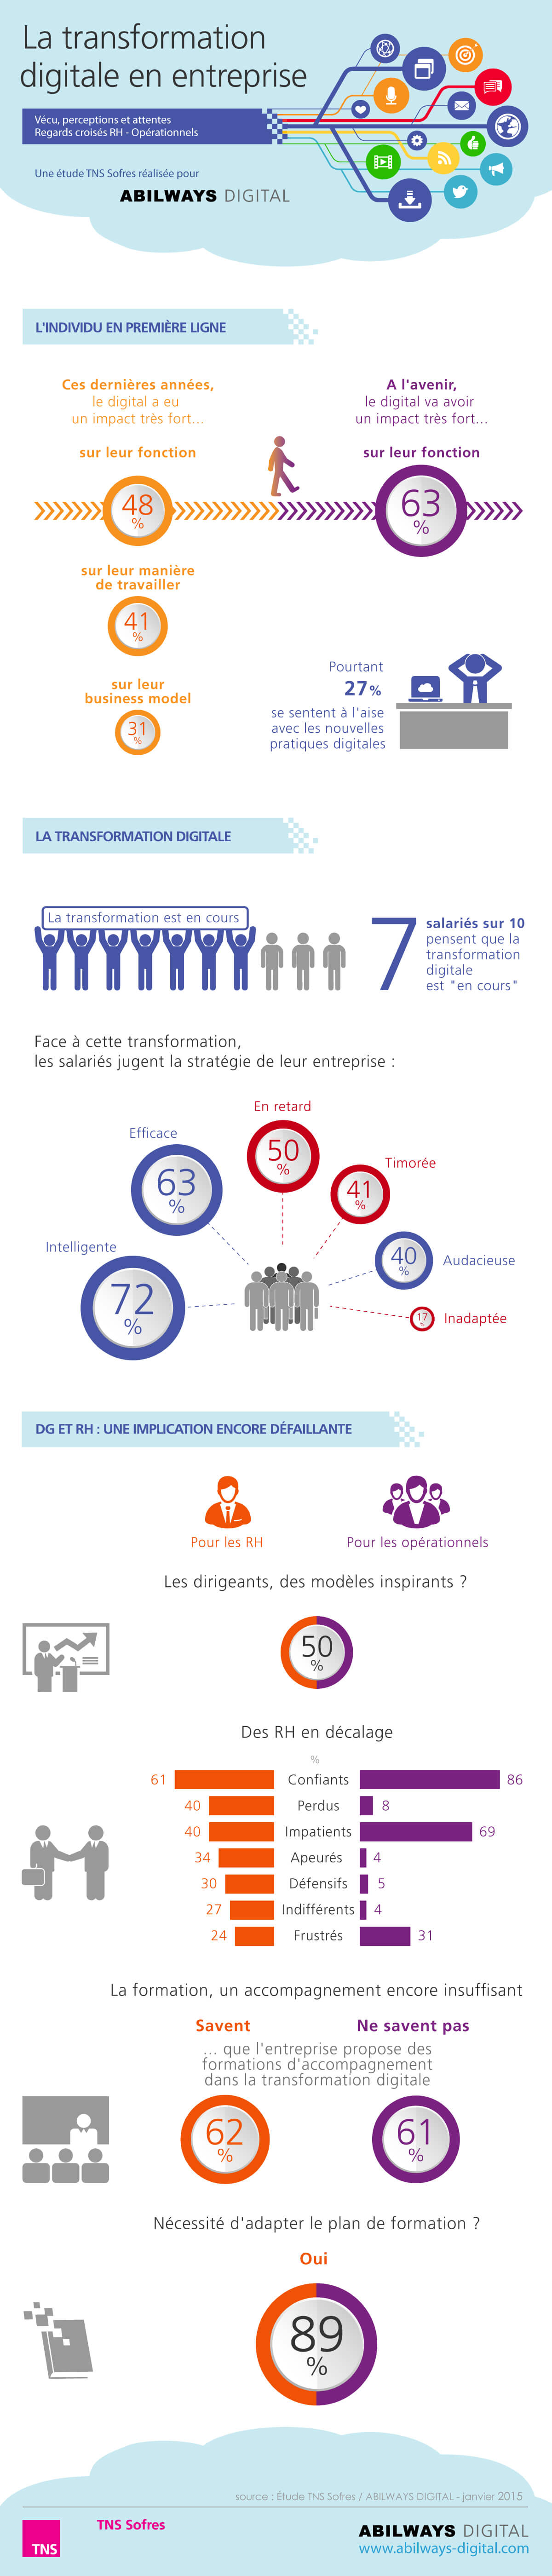 infographie transformation digitale chiffre cle 2017